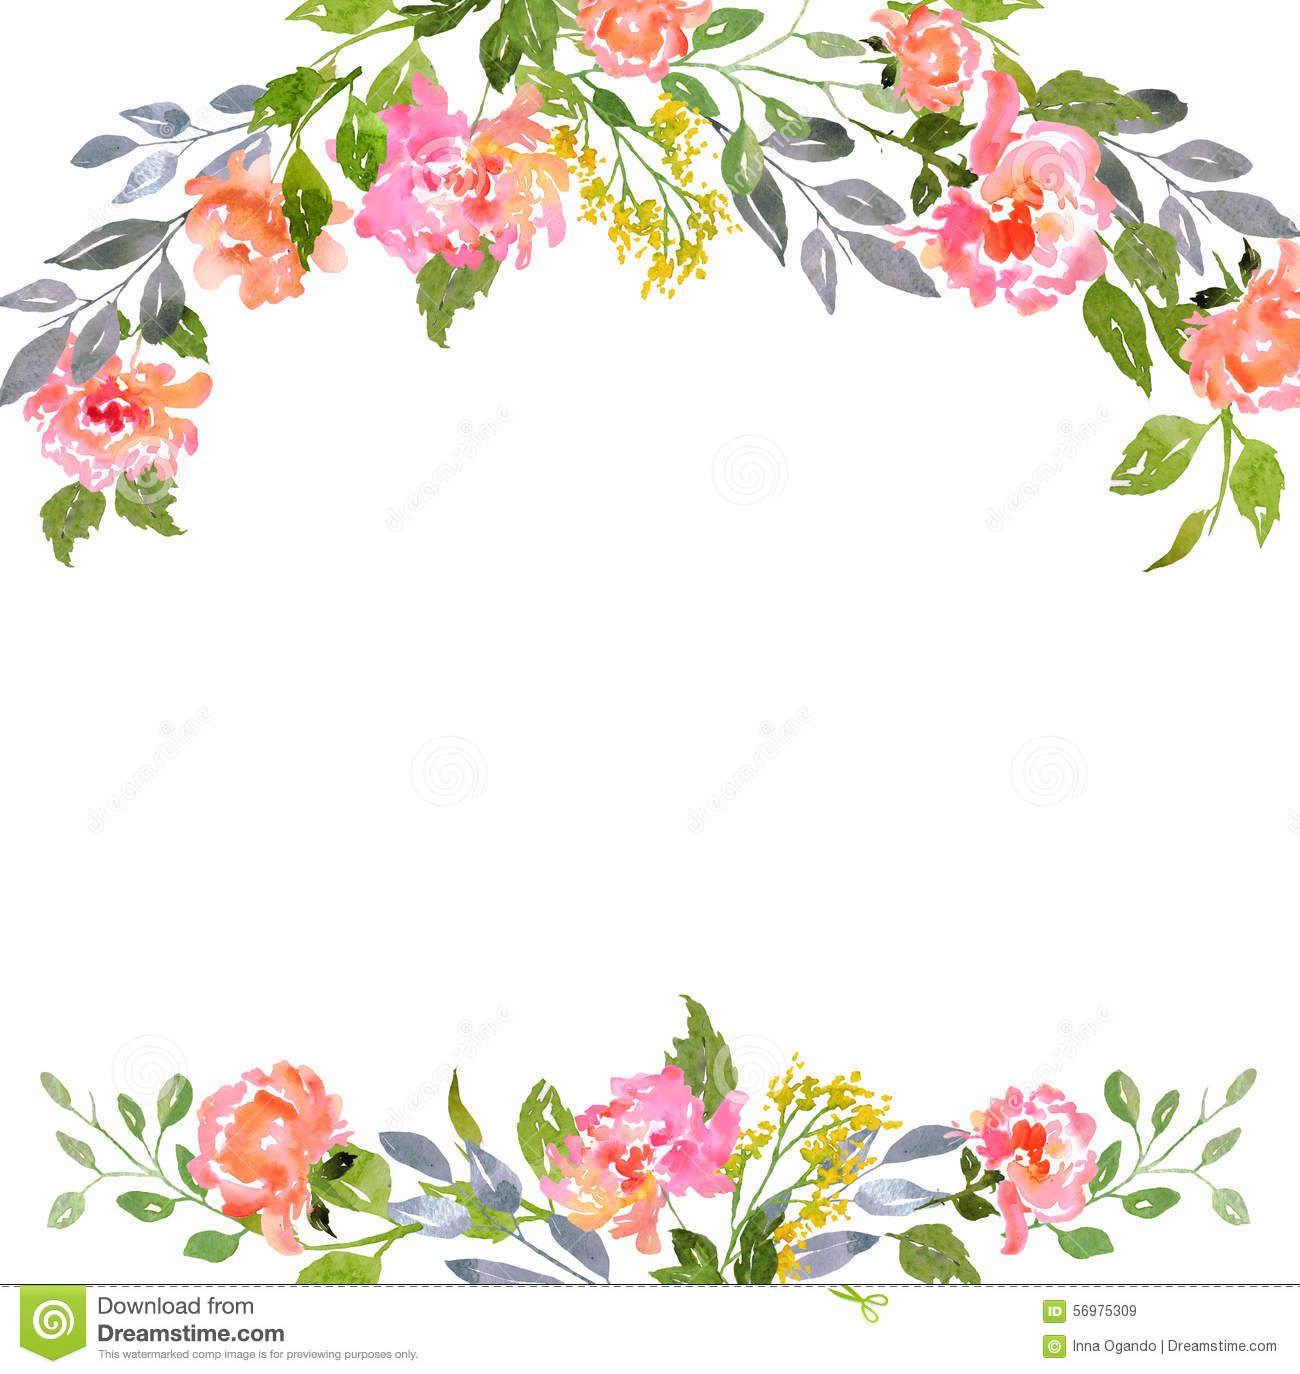 watercolor floral card template download from over 43 million high quality stock photos. Black Bedroom Furniture Sets. Home Design Ideas